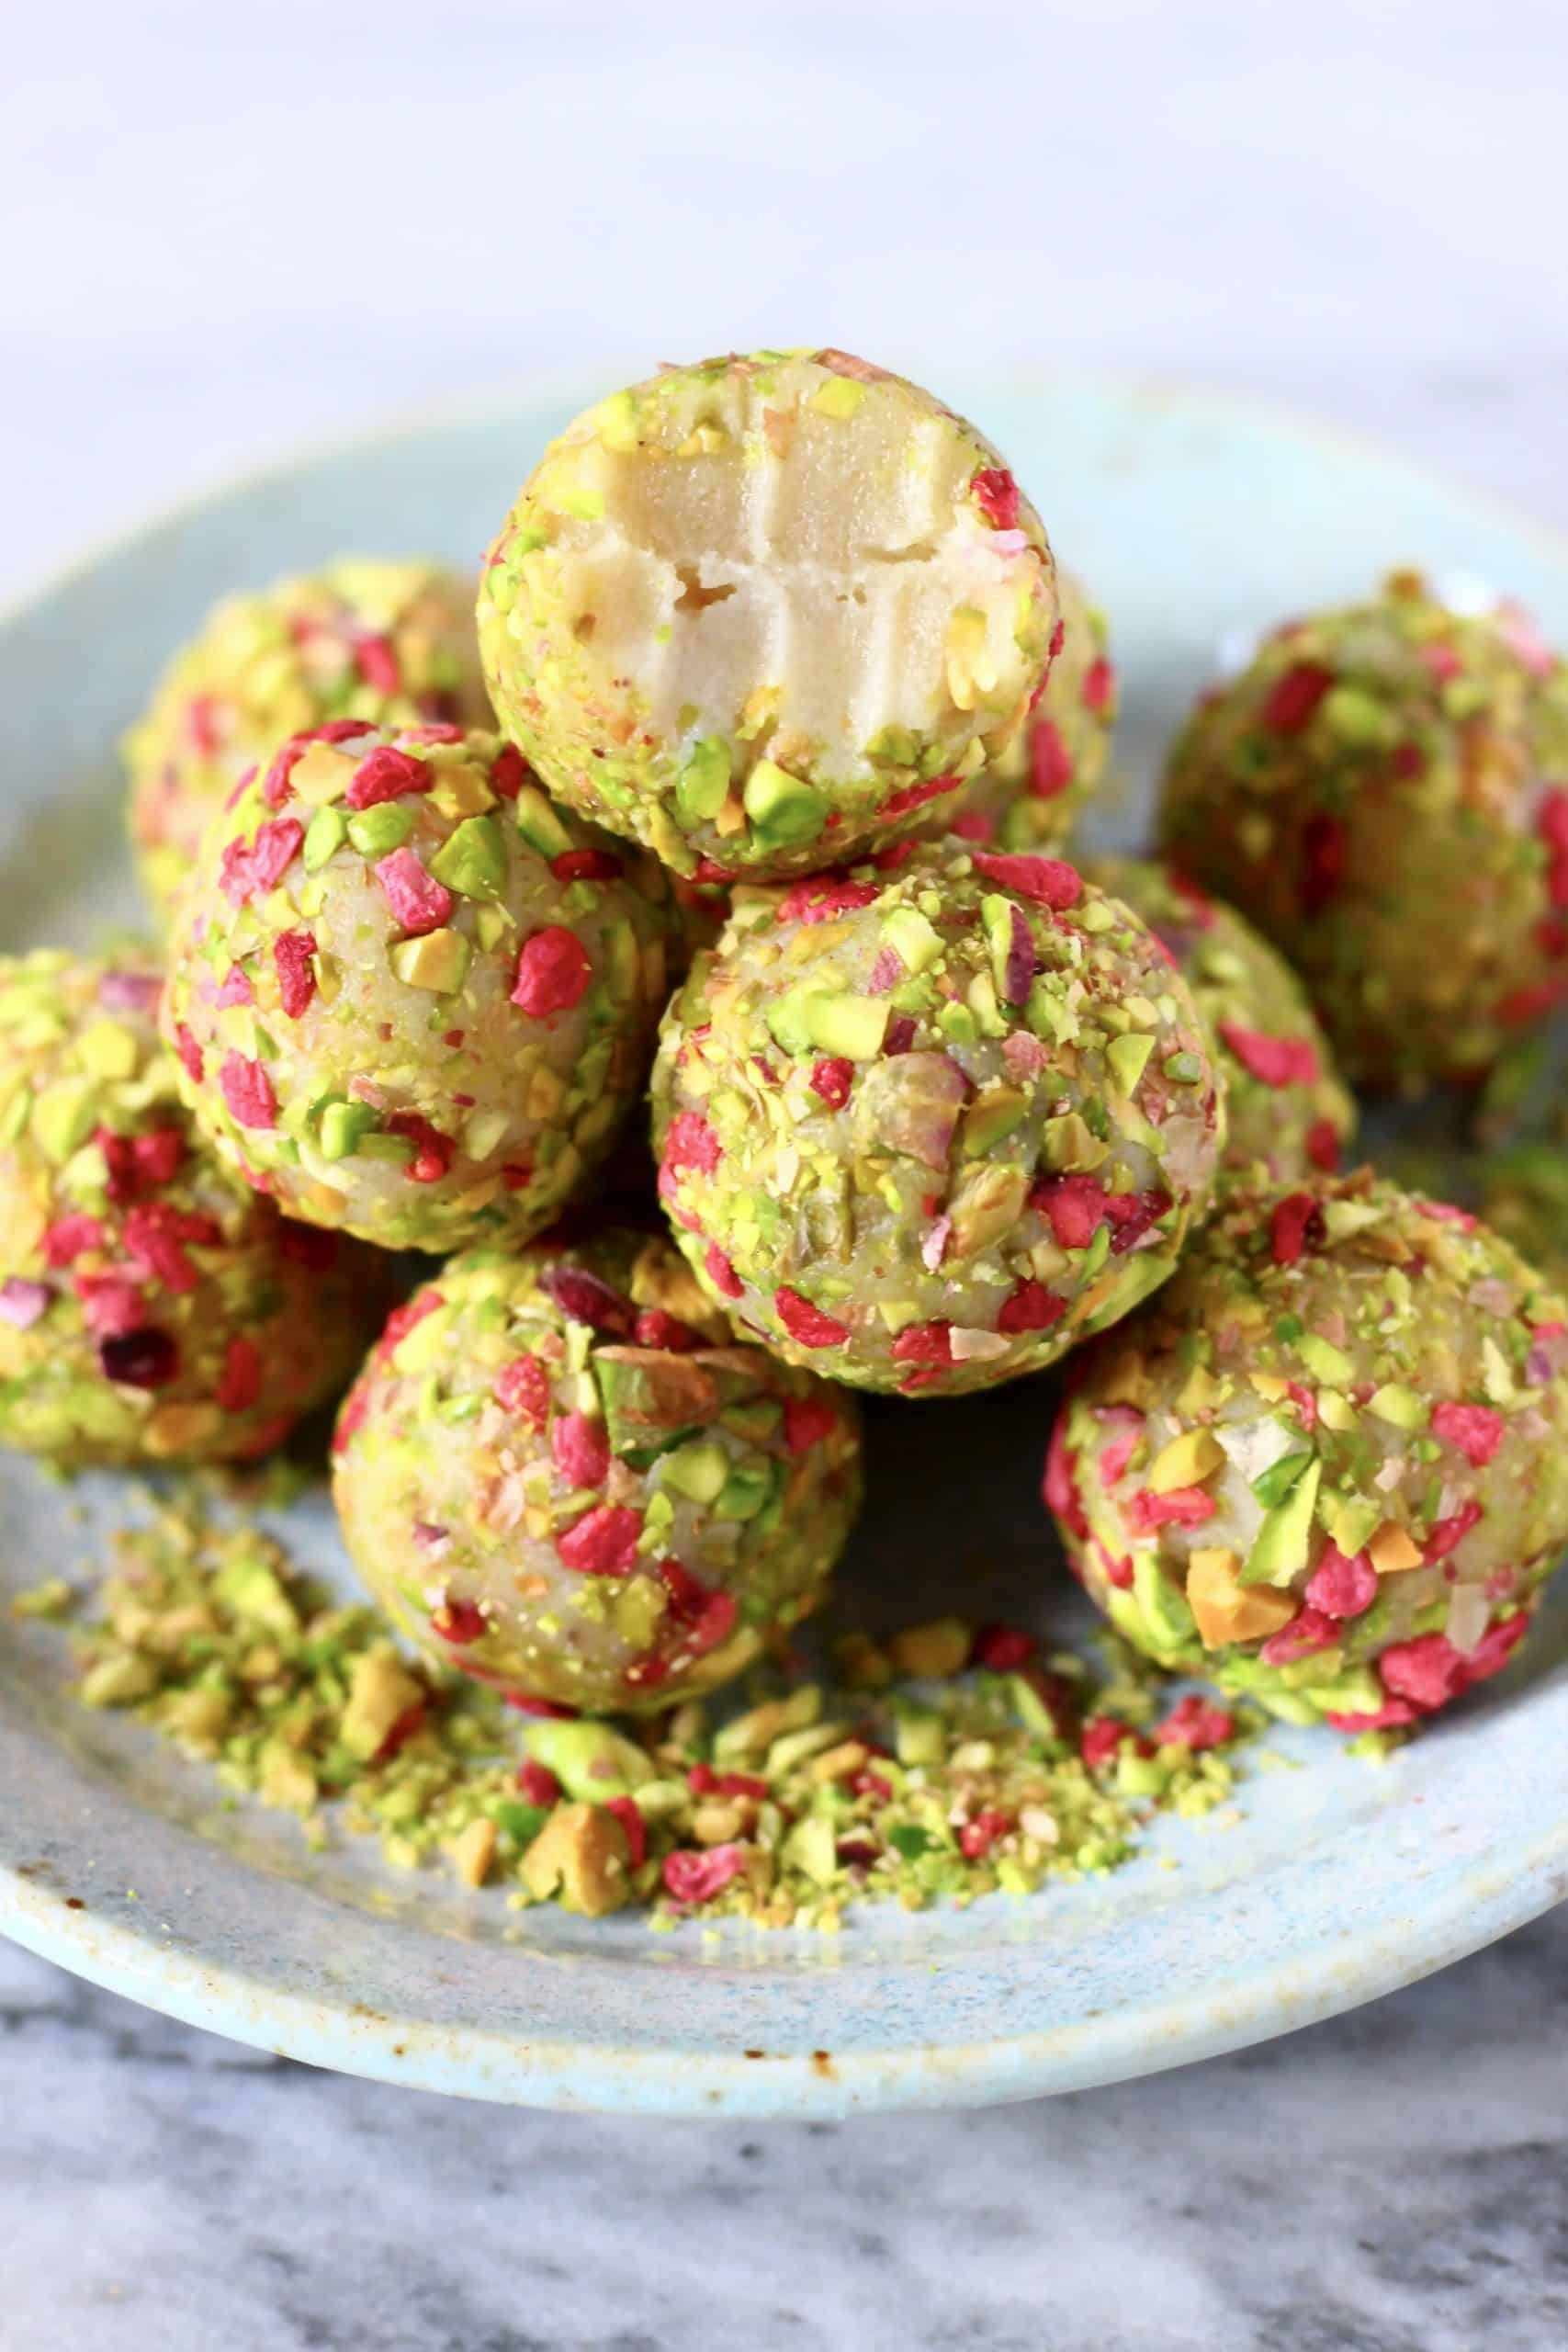 A pile of white chocolate truffles covered in chopped pistachios and freeze-dried raspberries with a bitten one